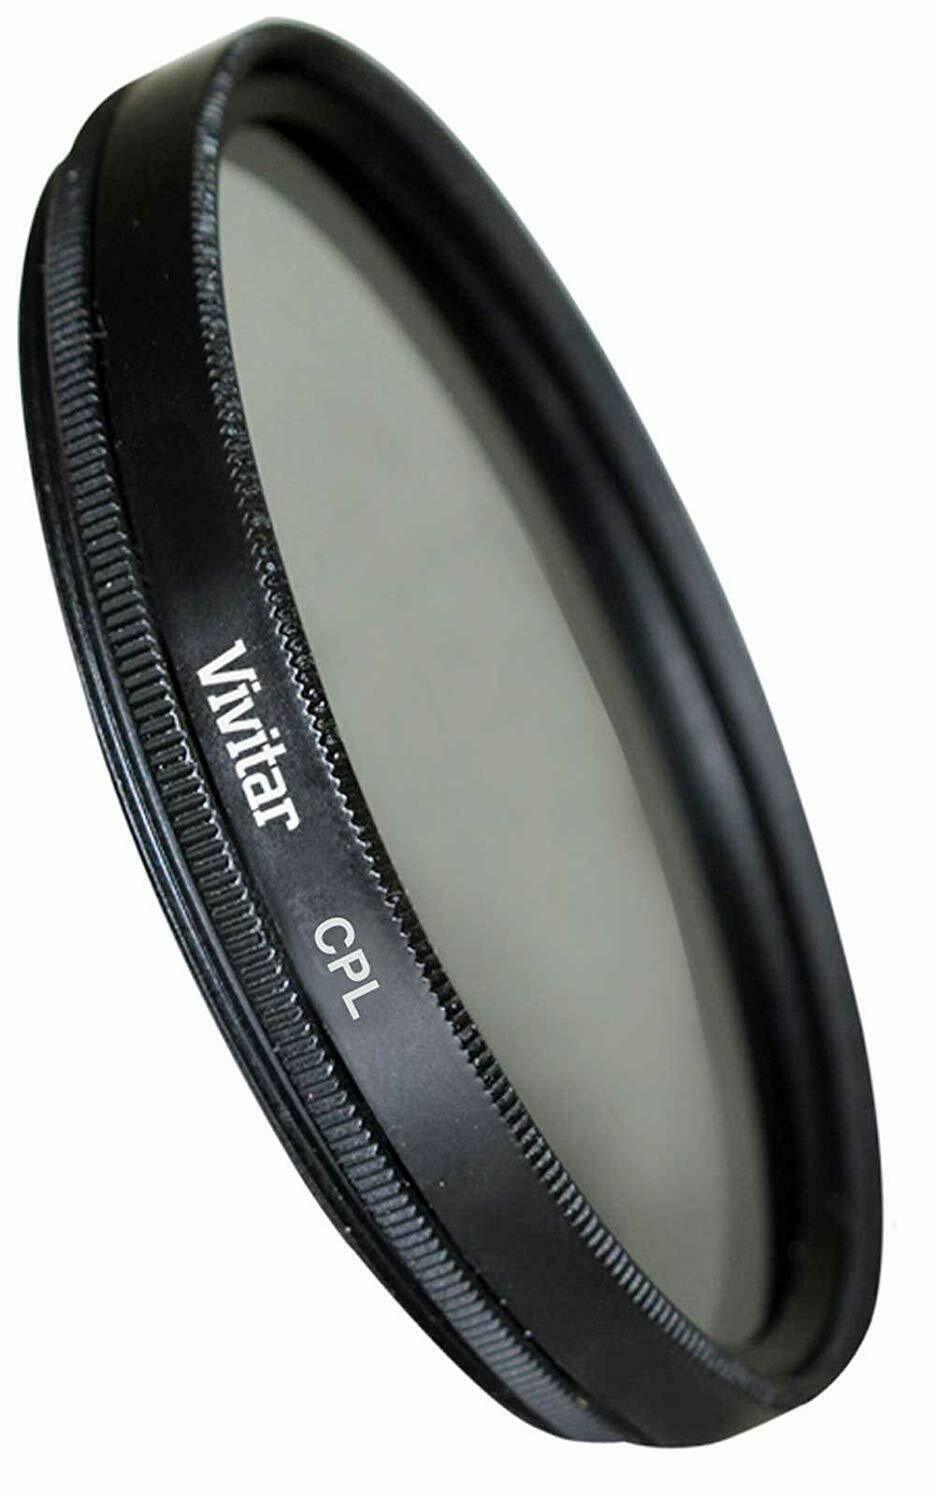 Primary image for Vivitar CPL Circular Polarizer Glass Filter 55mm